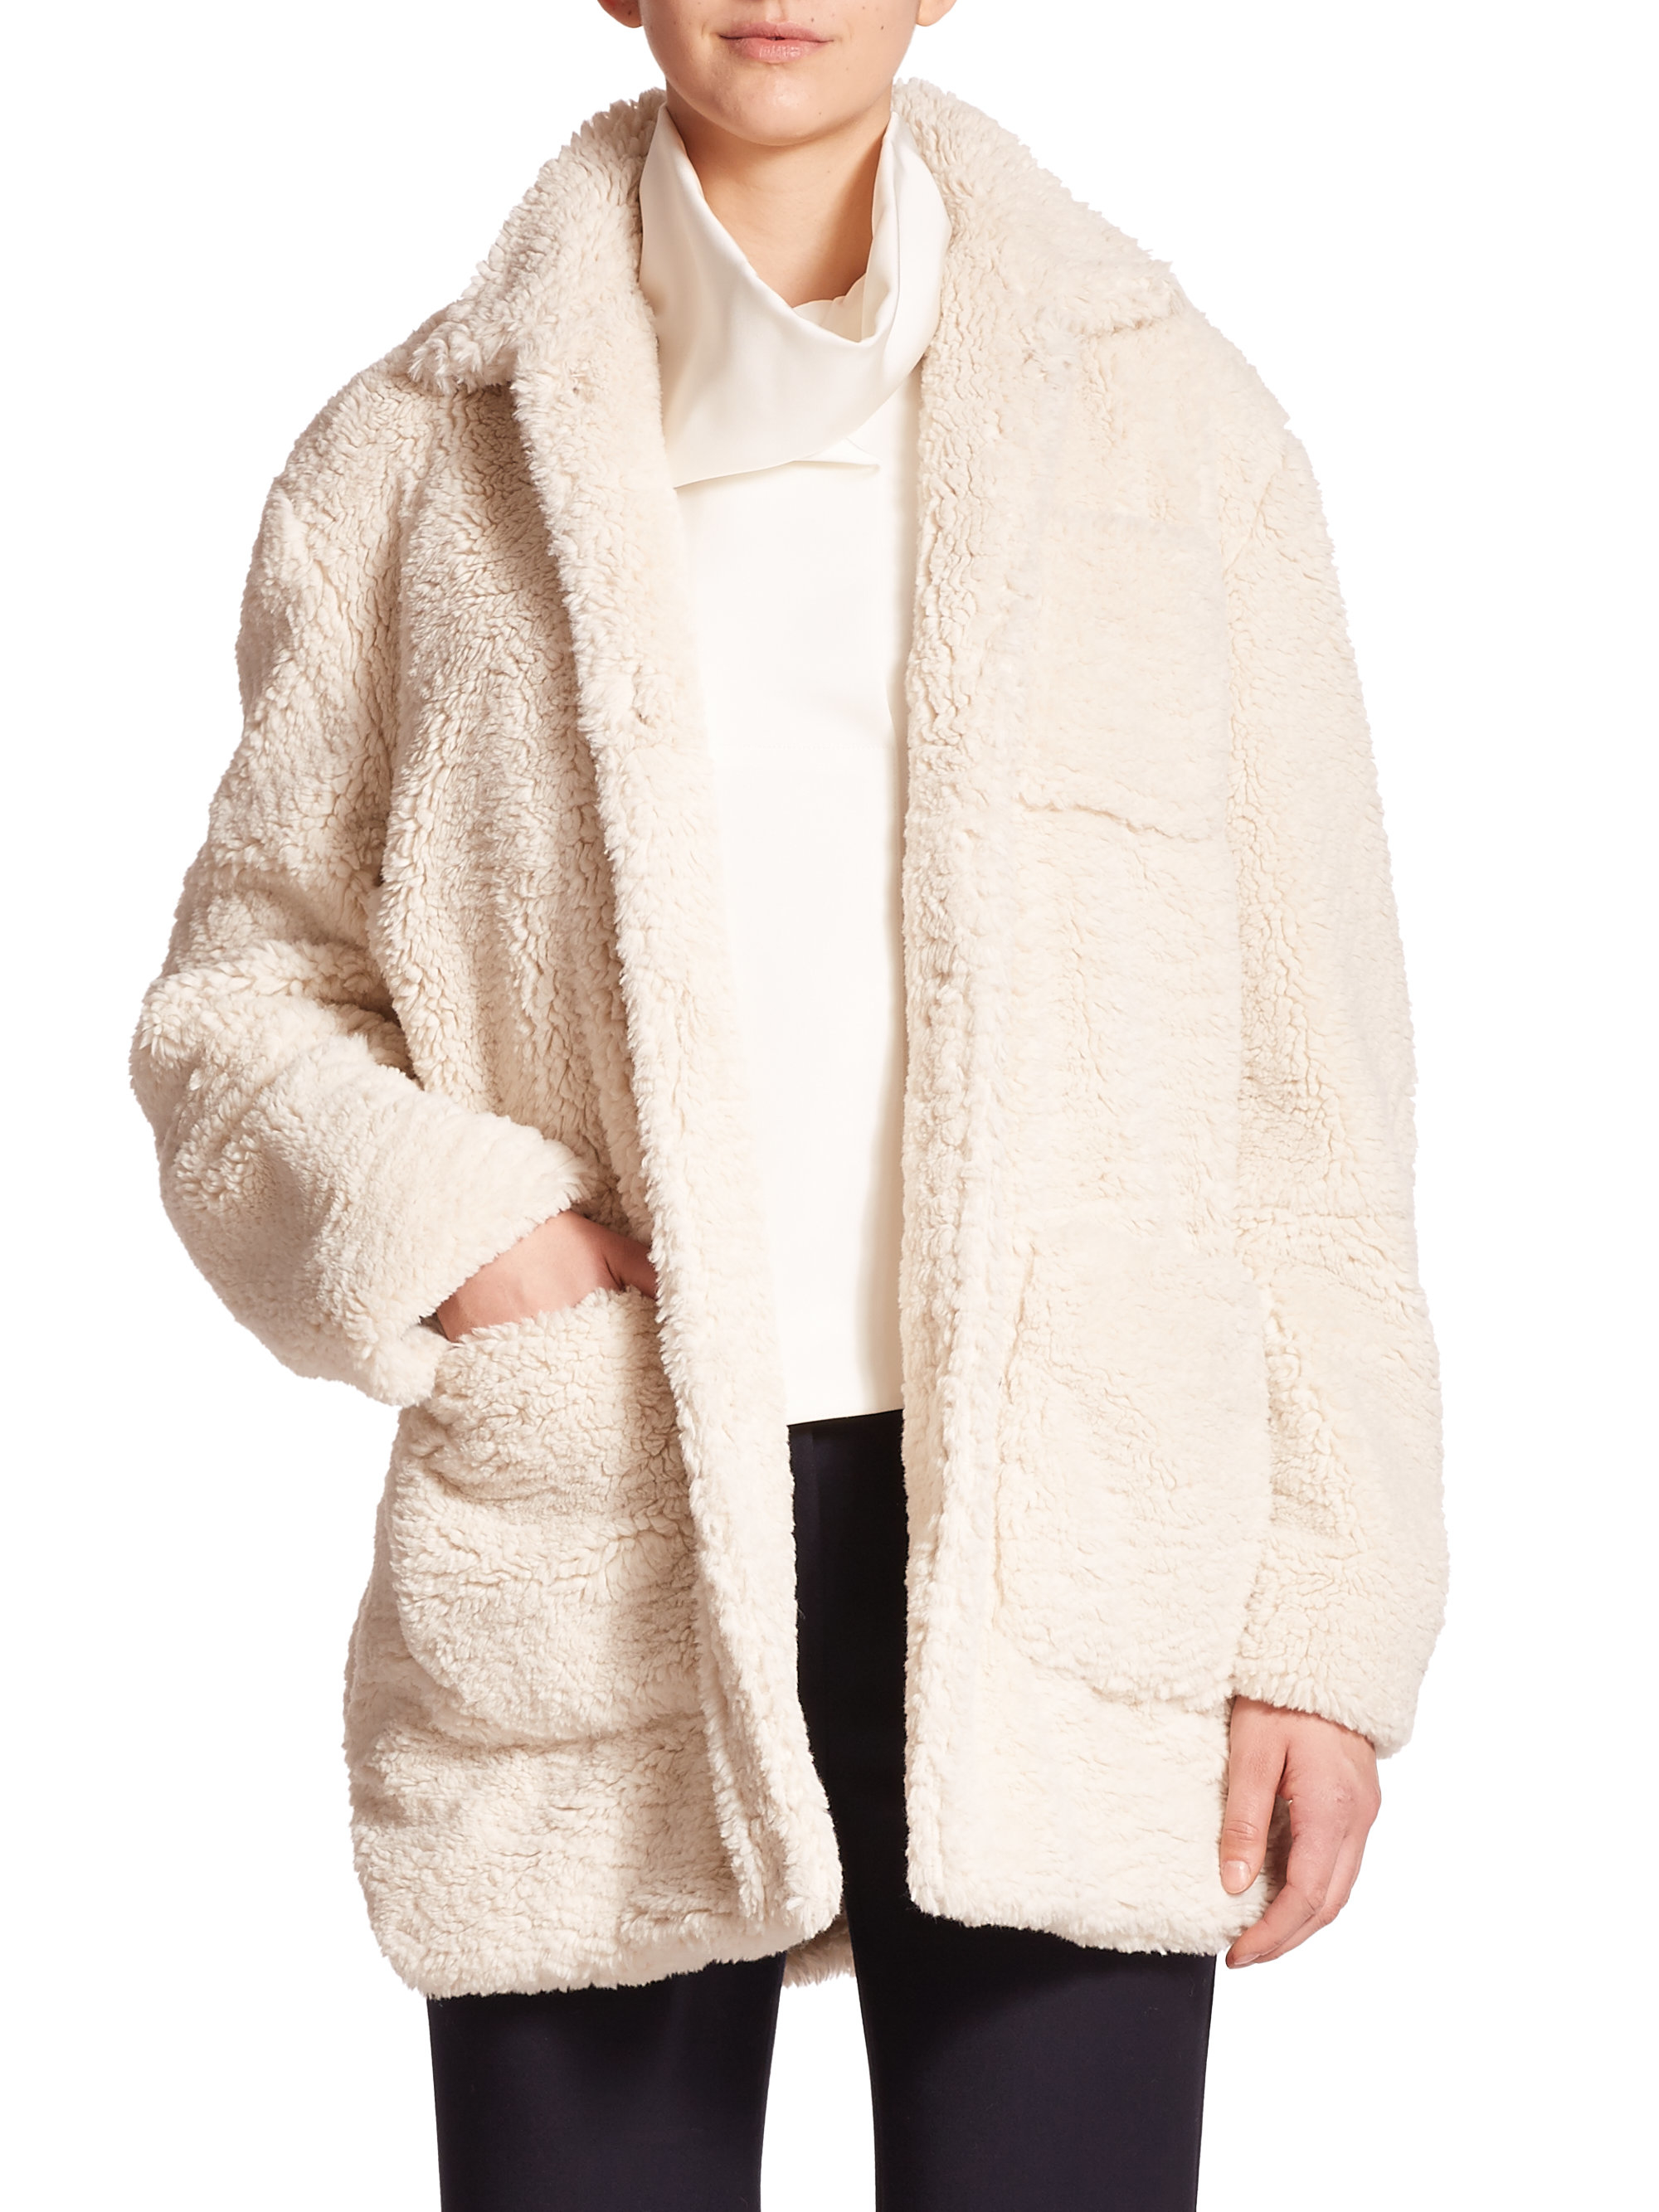 Opening ceremony Bern Oversized Faux Shearling Coat in Natural | Lyst